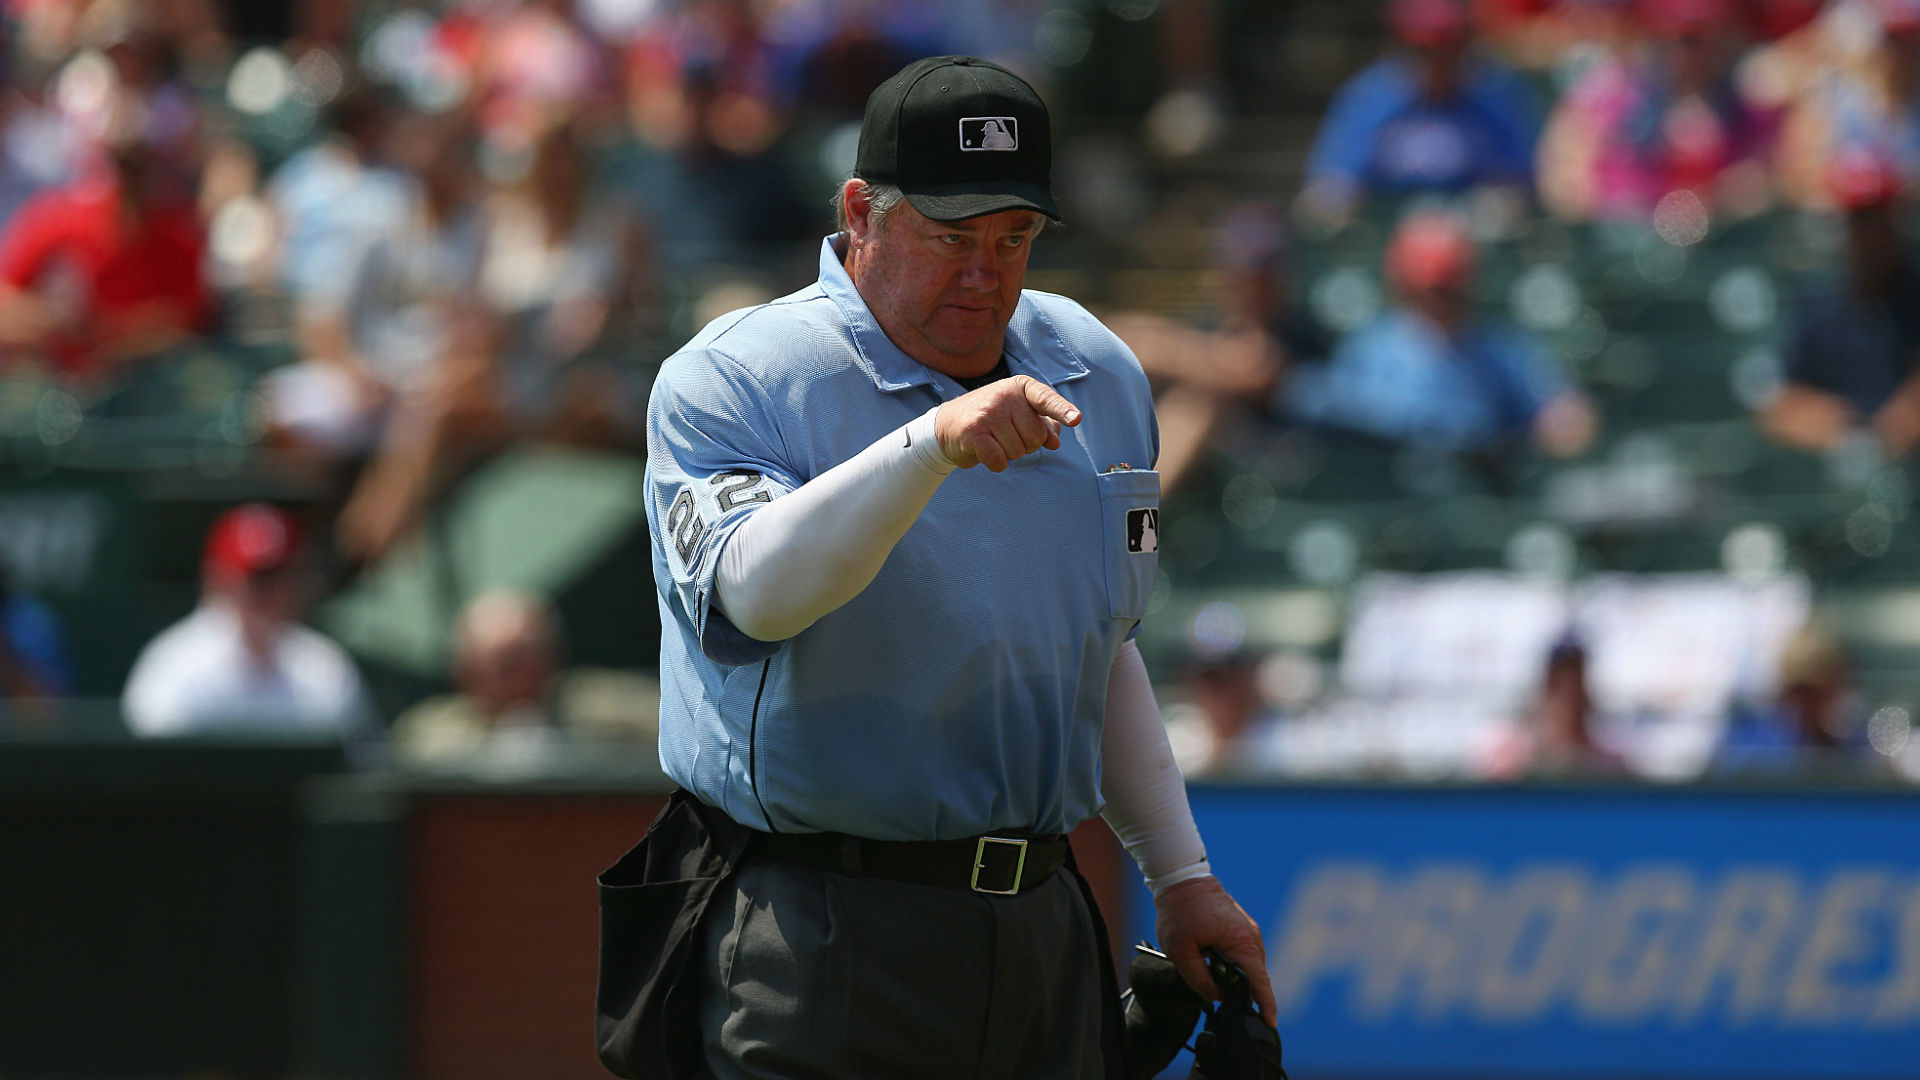 MLB Suspends Umpire Following Comments He Made in June